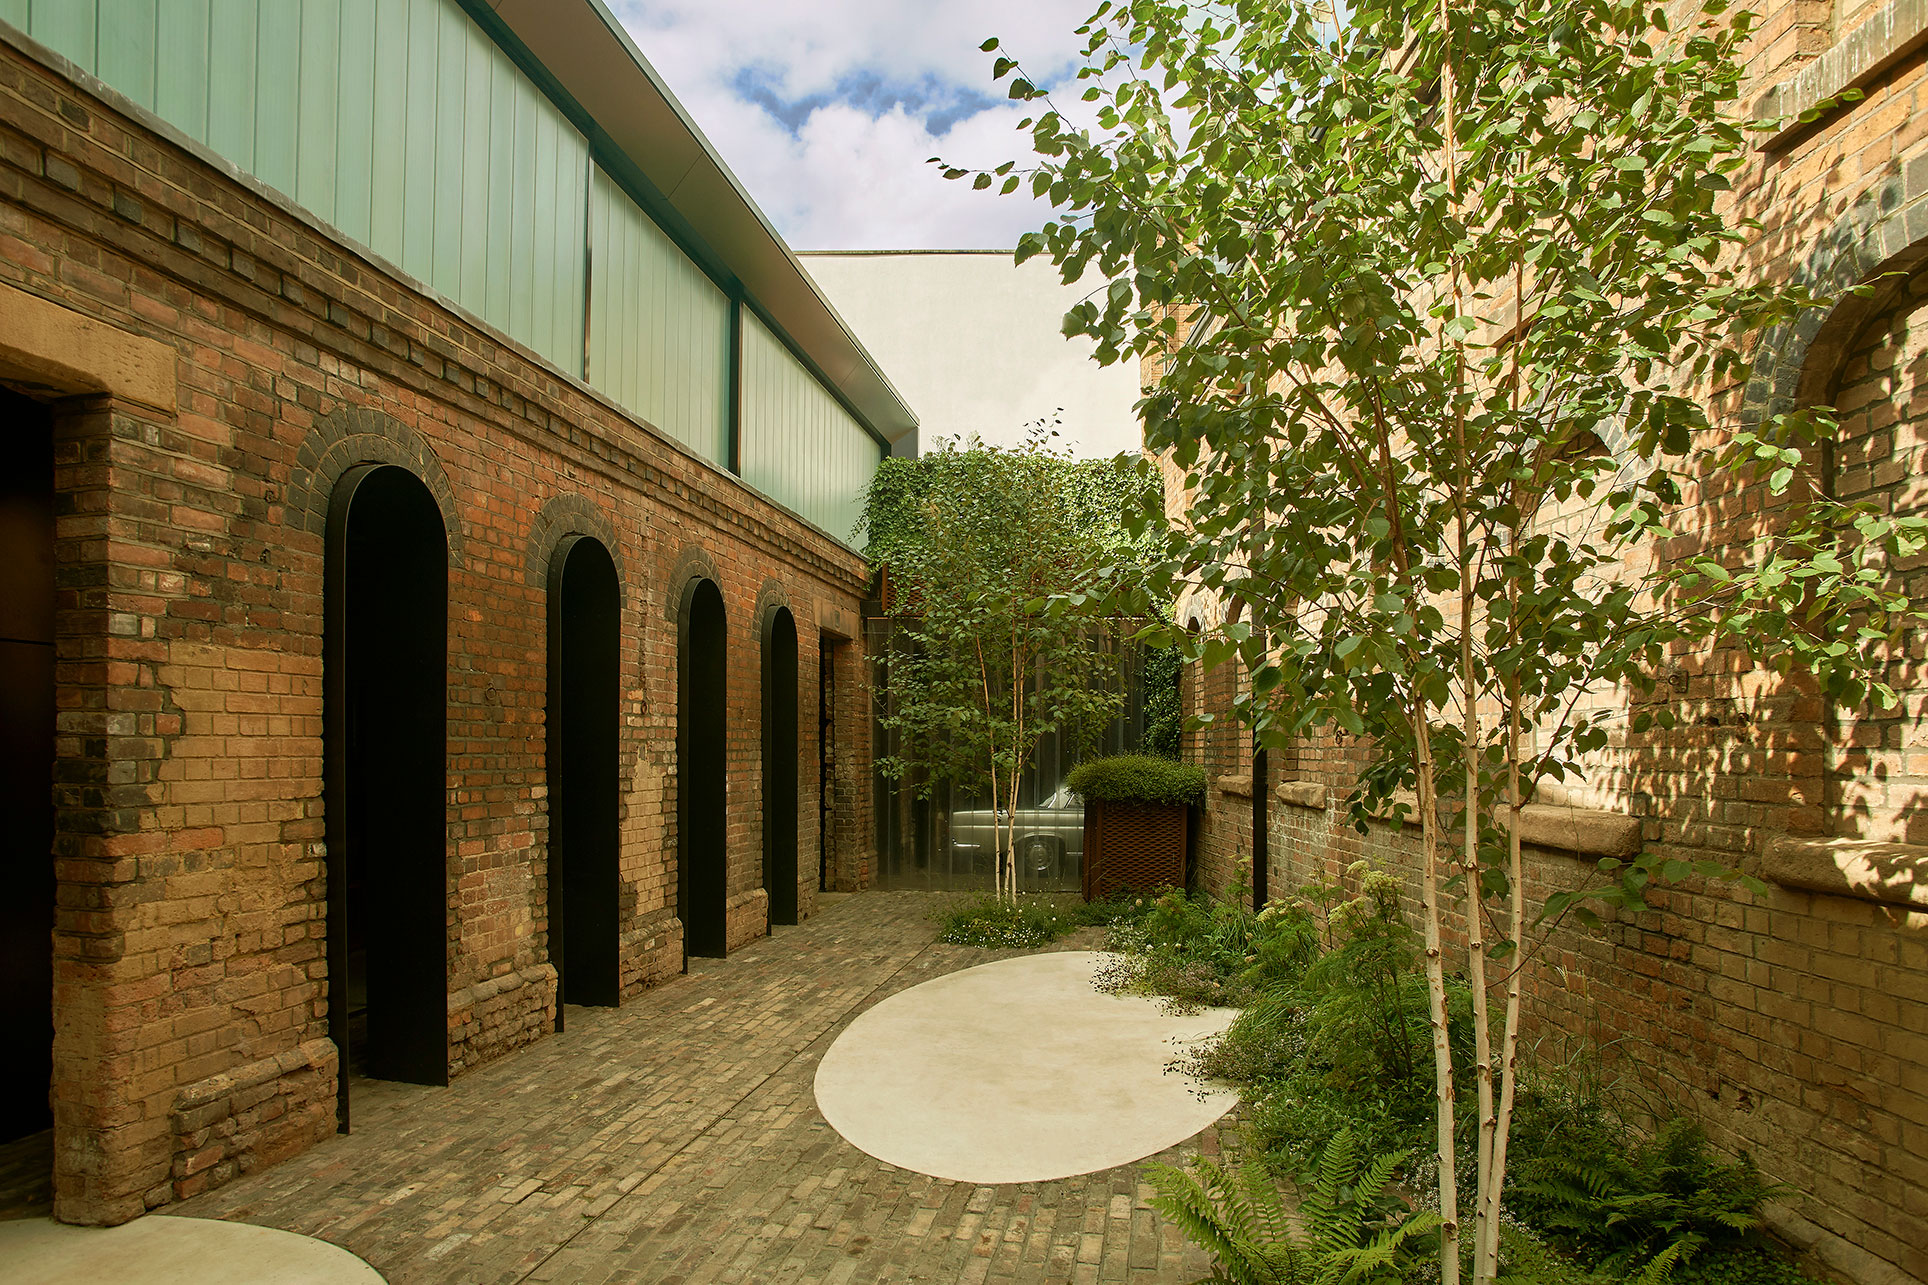 Original brickwork openings have been lined in rolled steel to provide an arcaded podium onto the main cobbled courtyard.  This contrasts with lightness of the cast glass and steel monolith of the first floor.